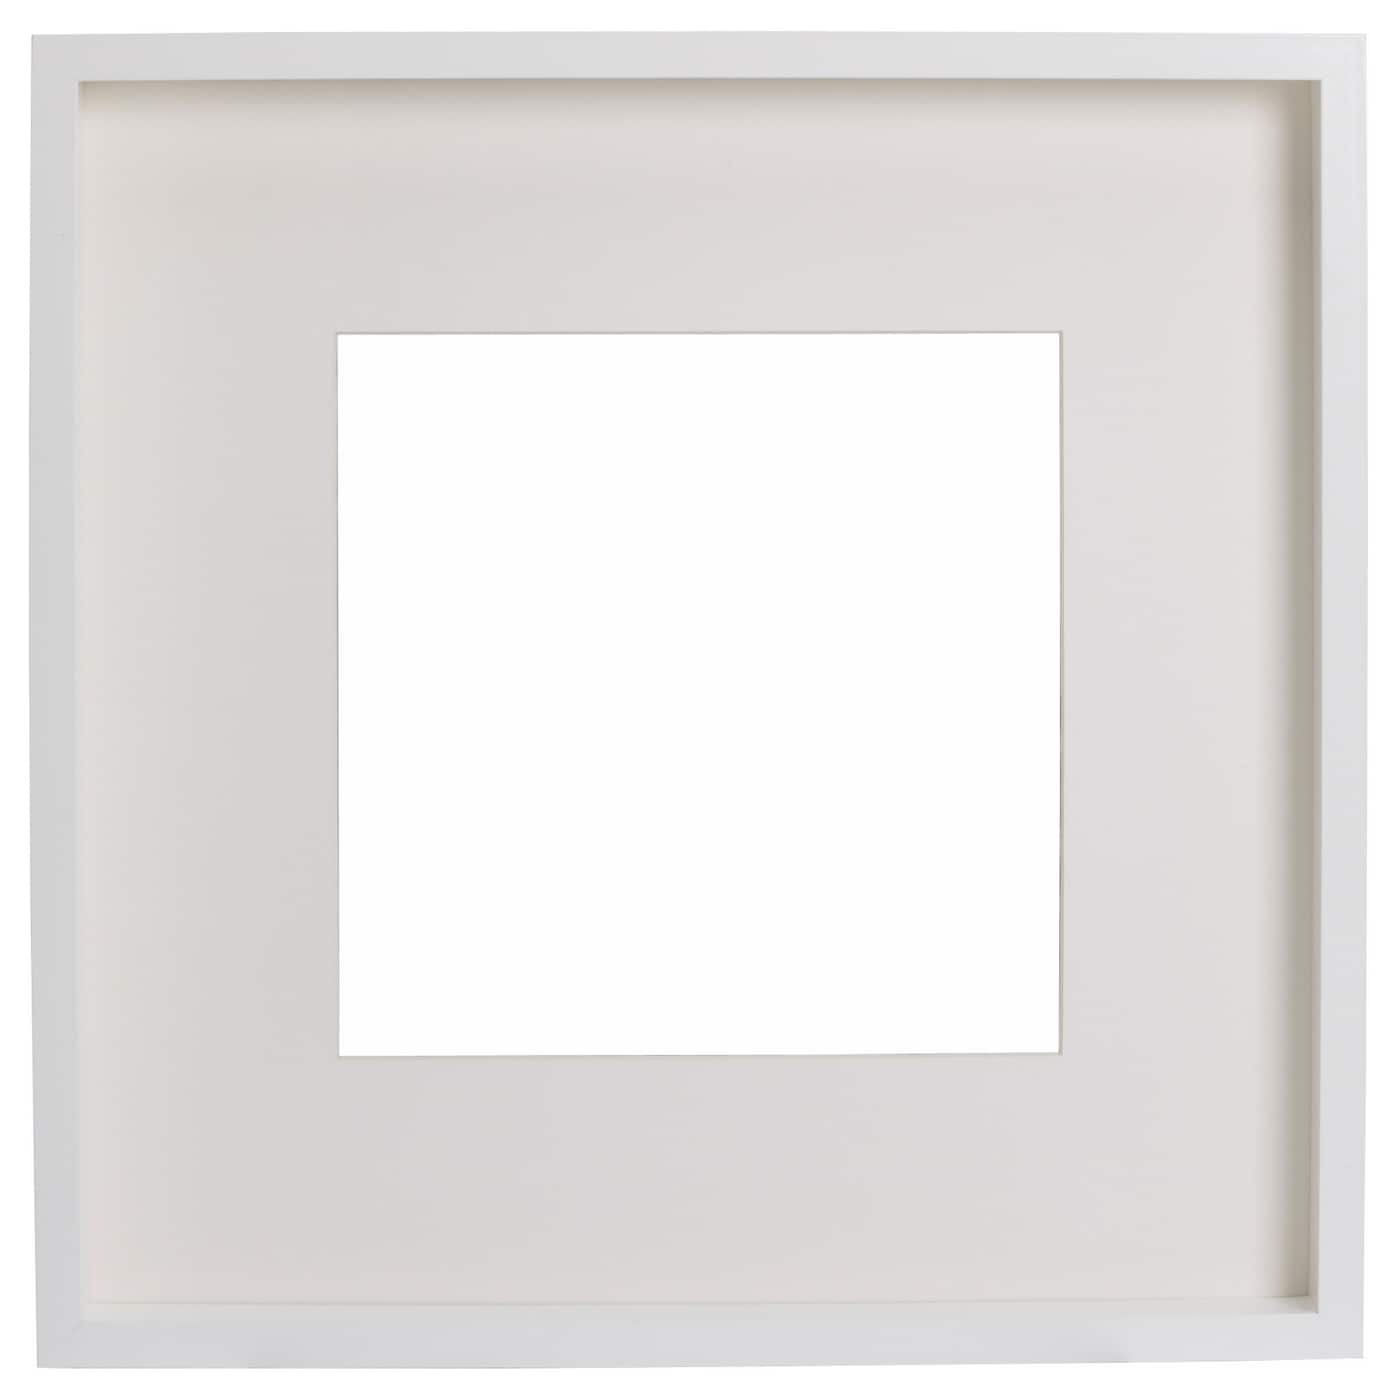 IKEA RIBBA frame You can place the motif on the front or back of the extra deep frame.